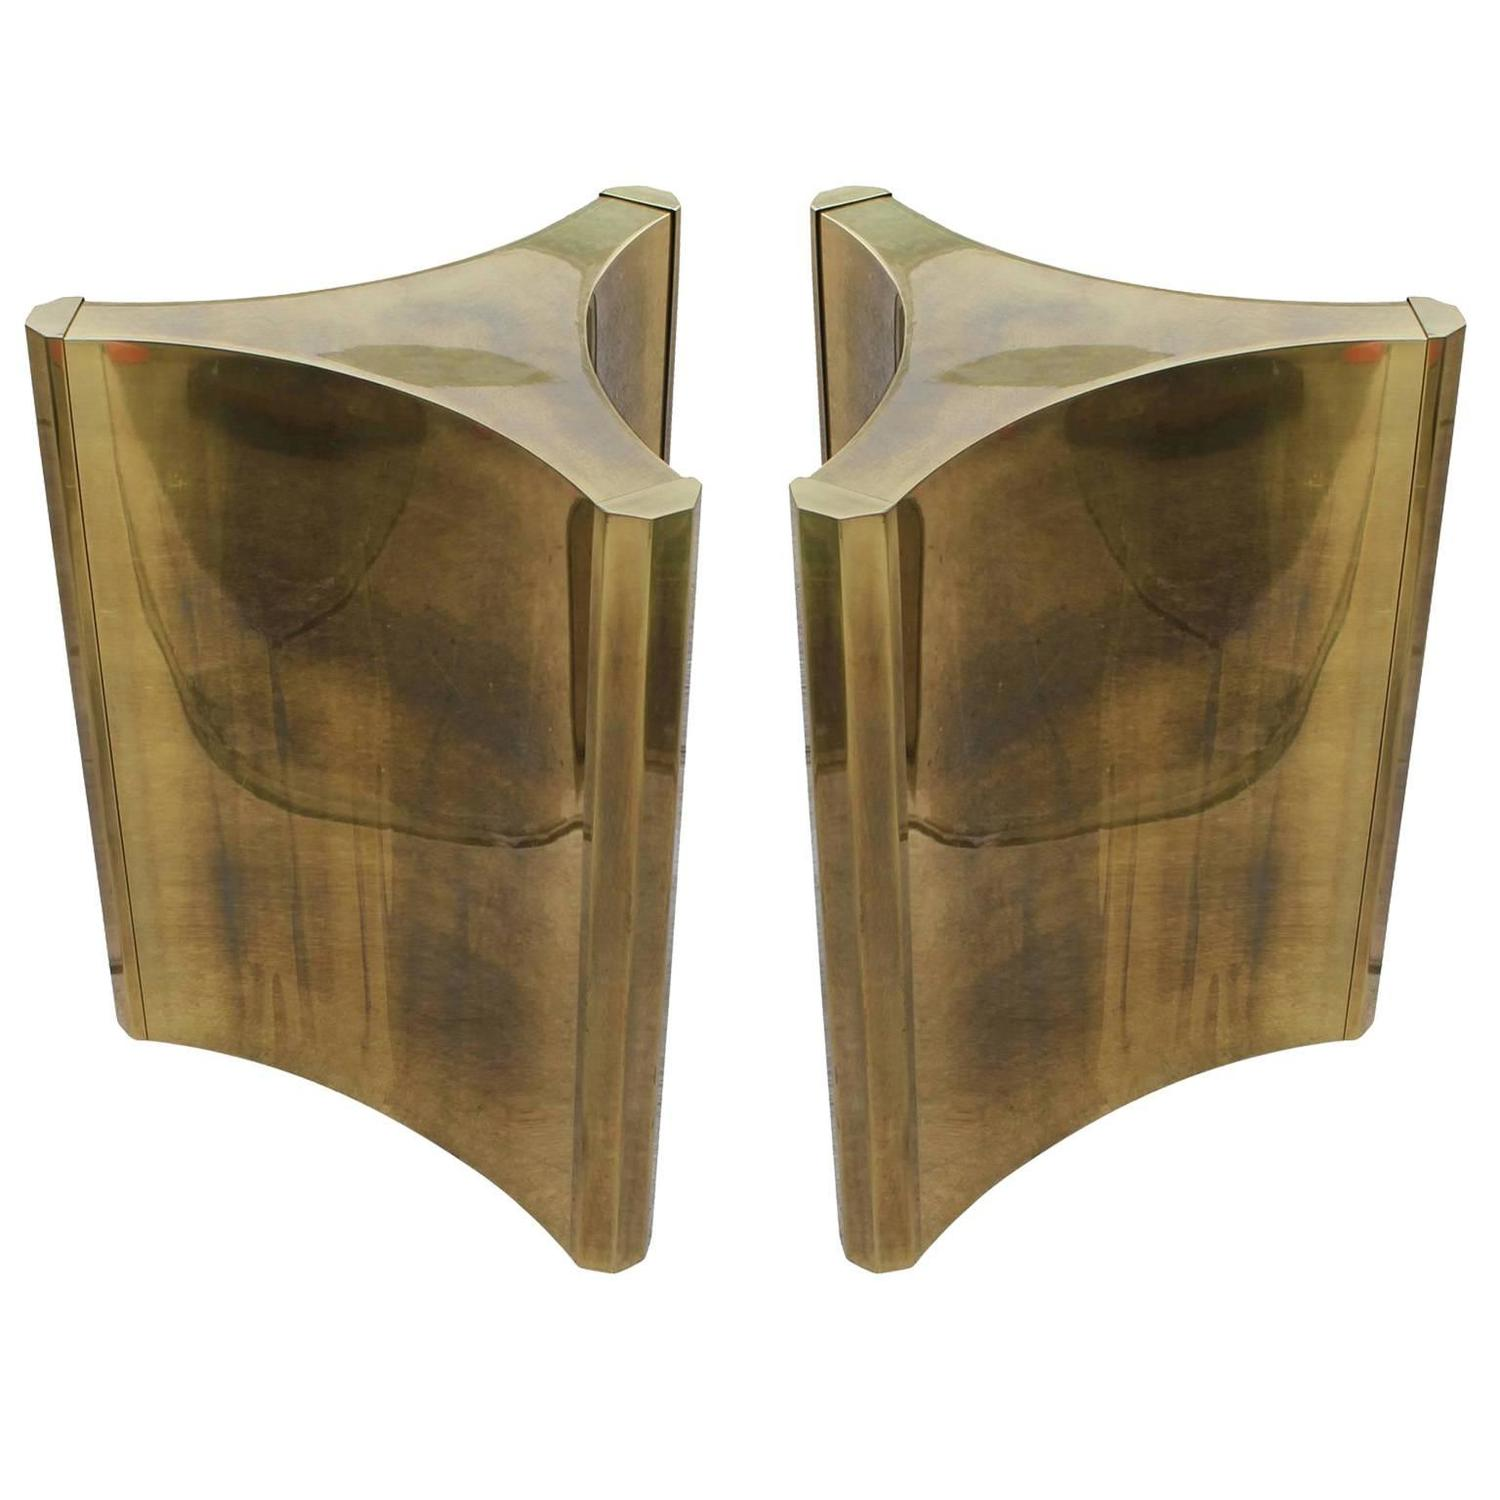 Luxe Pair Of Brass Mastercraft Pedestal Table Bases At 1stdibs